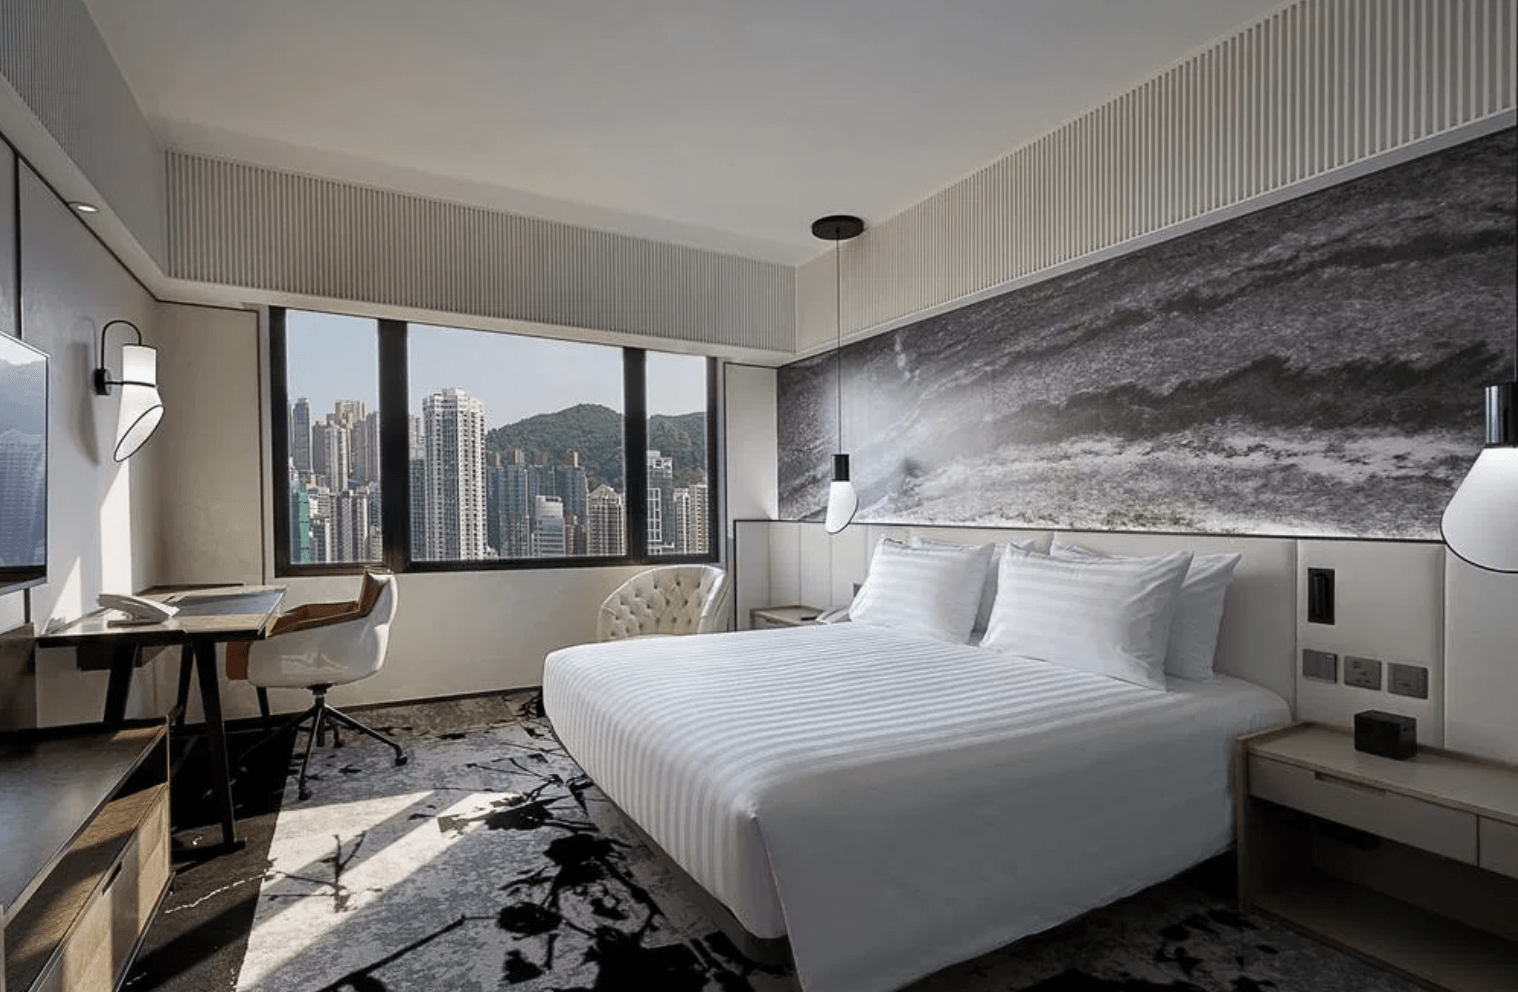 香港柏寧酒店 The Park Lane Hong Kong, a Pullman Hotel-尊貴鉑爾曼客房 + SKYE Roofbar體驗